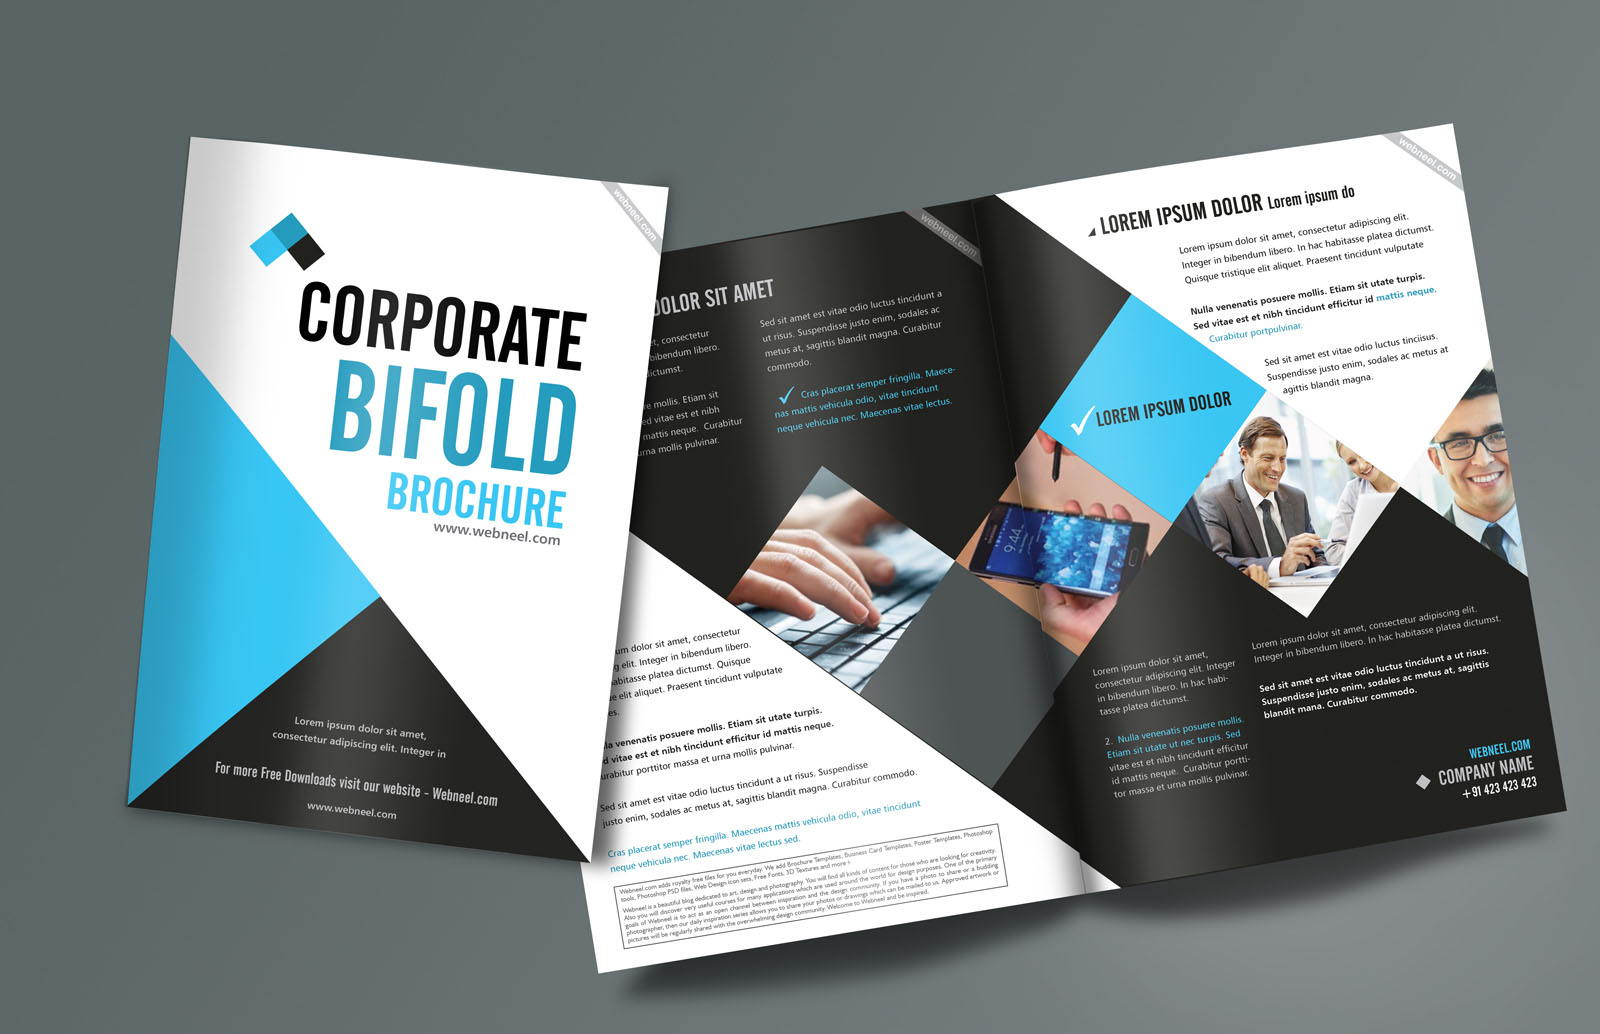 Corporate bifold brochure design templates freedownload for Brochures design templates